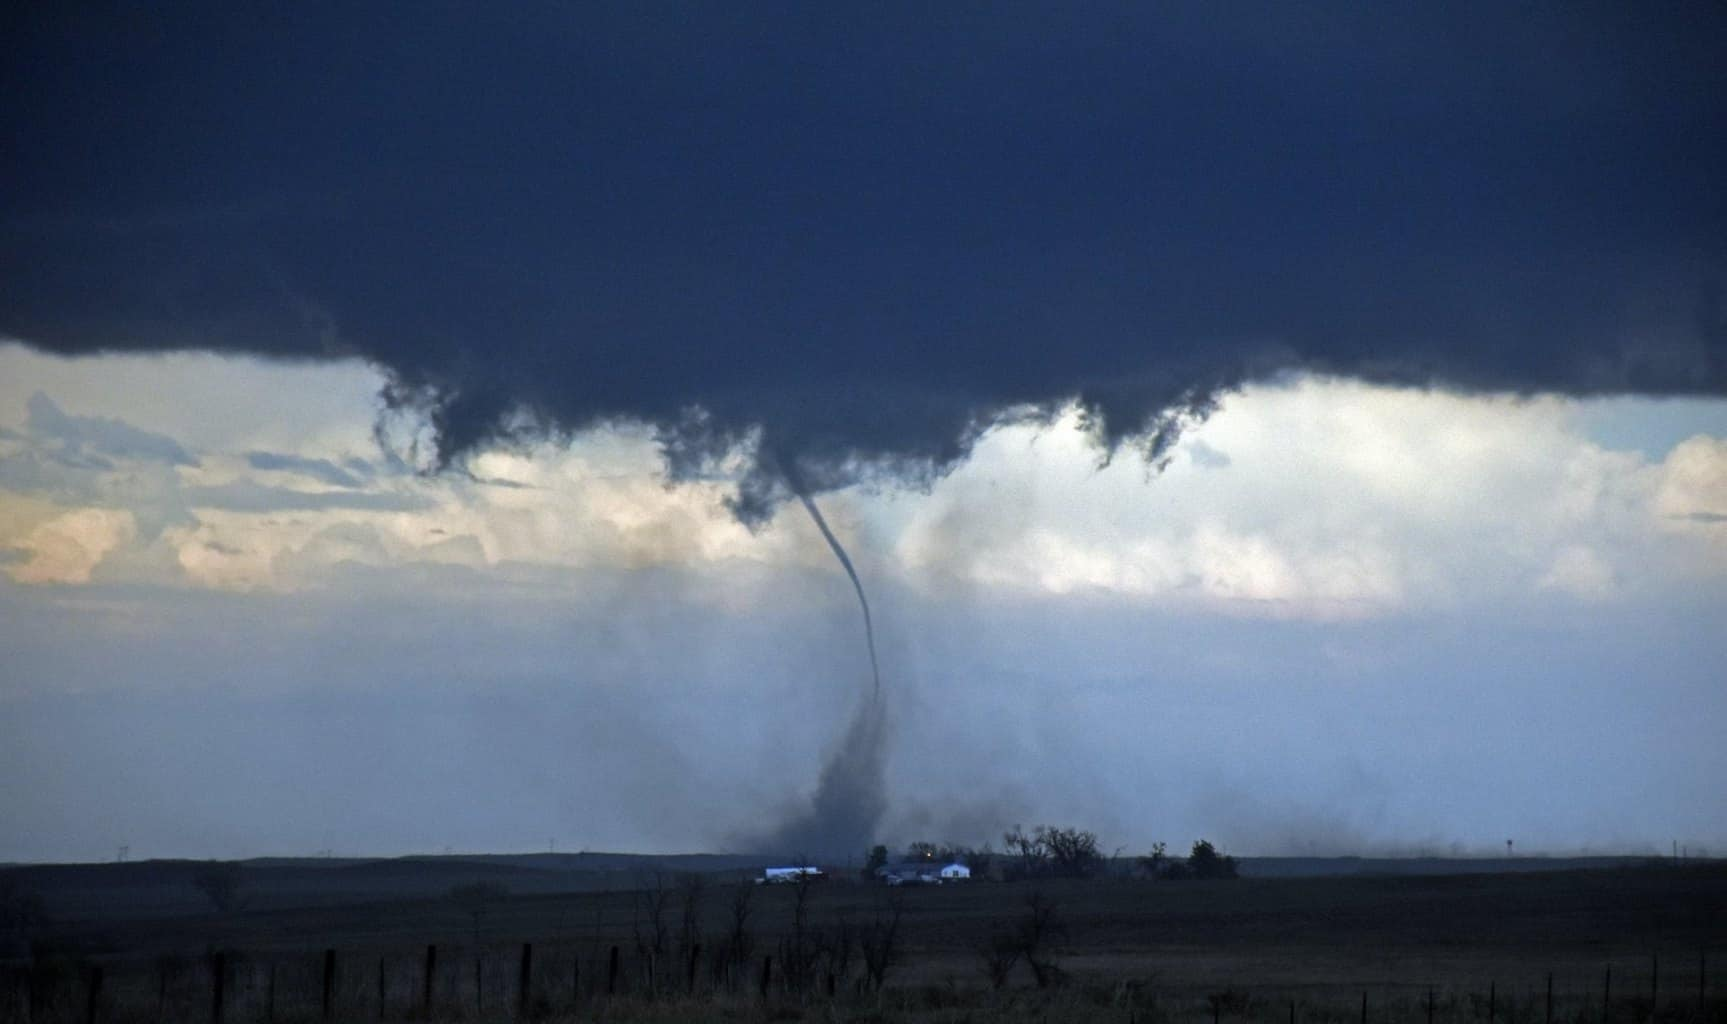 The beginning stage of the Wray, Colorado tornado!!